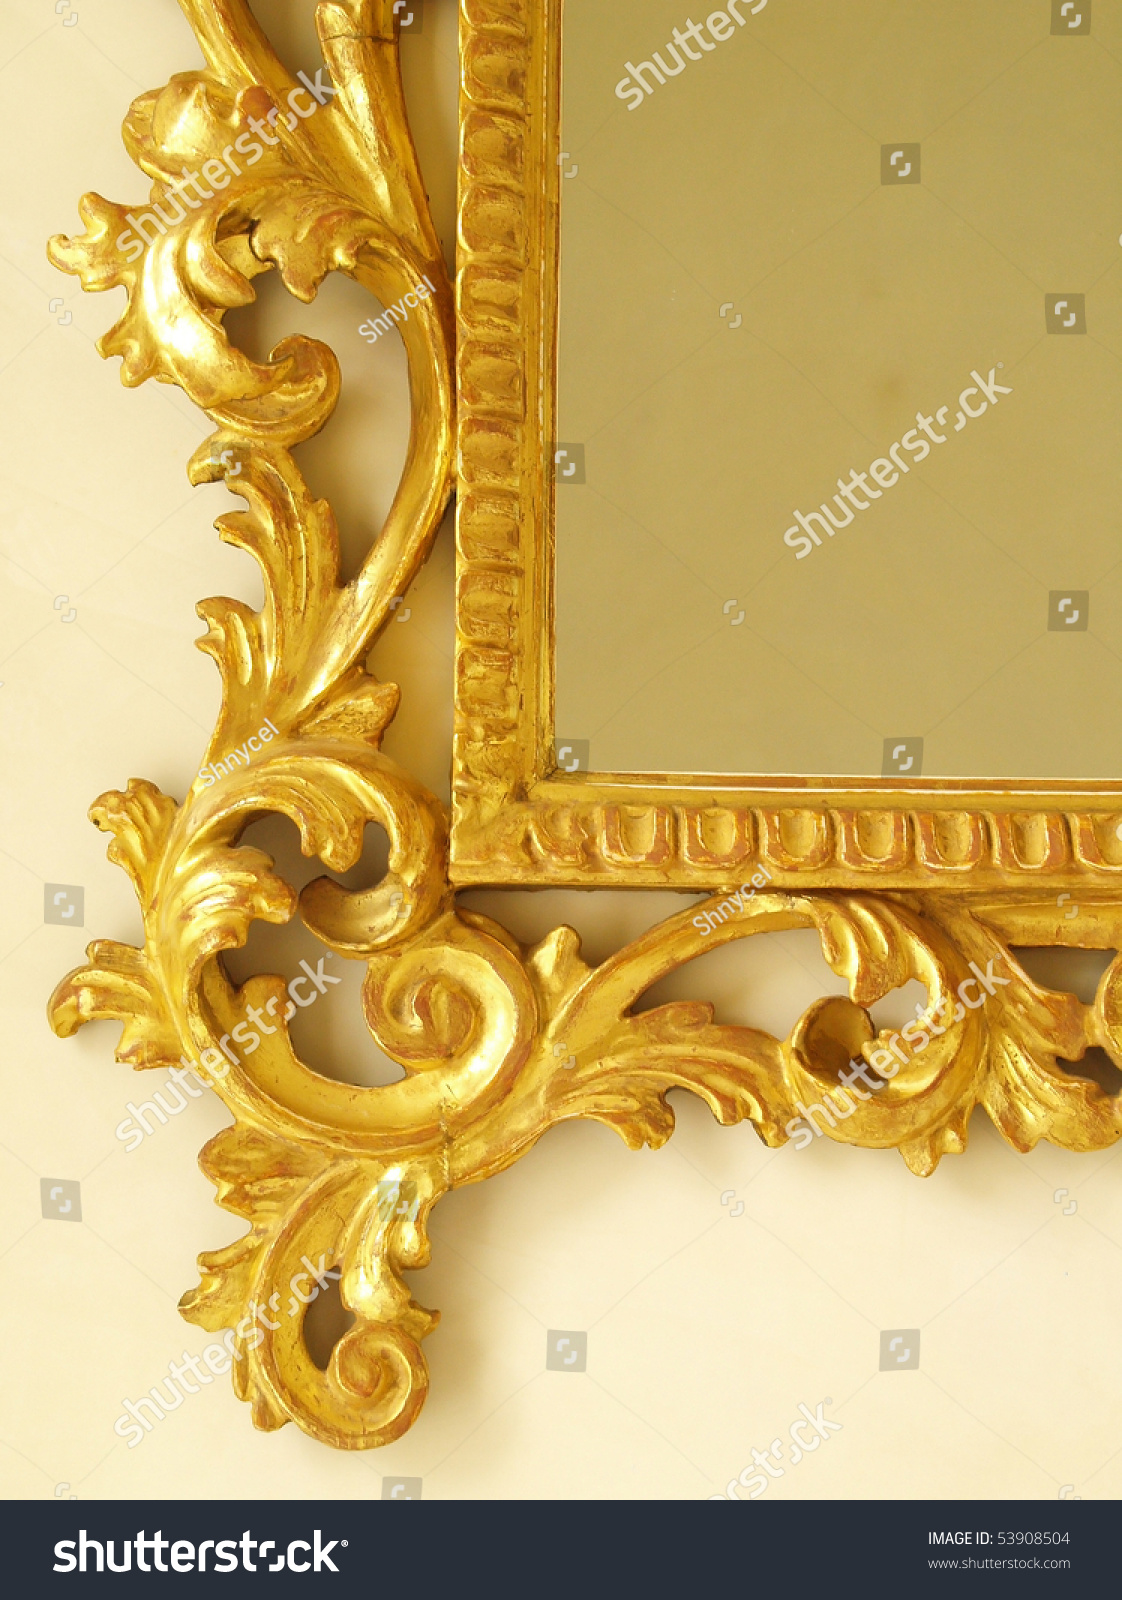 Golden Antique Mirror Frame Molding Stock Photo 53908504